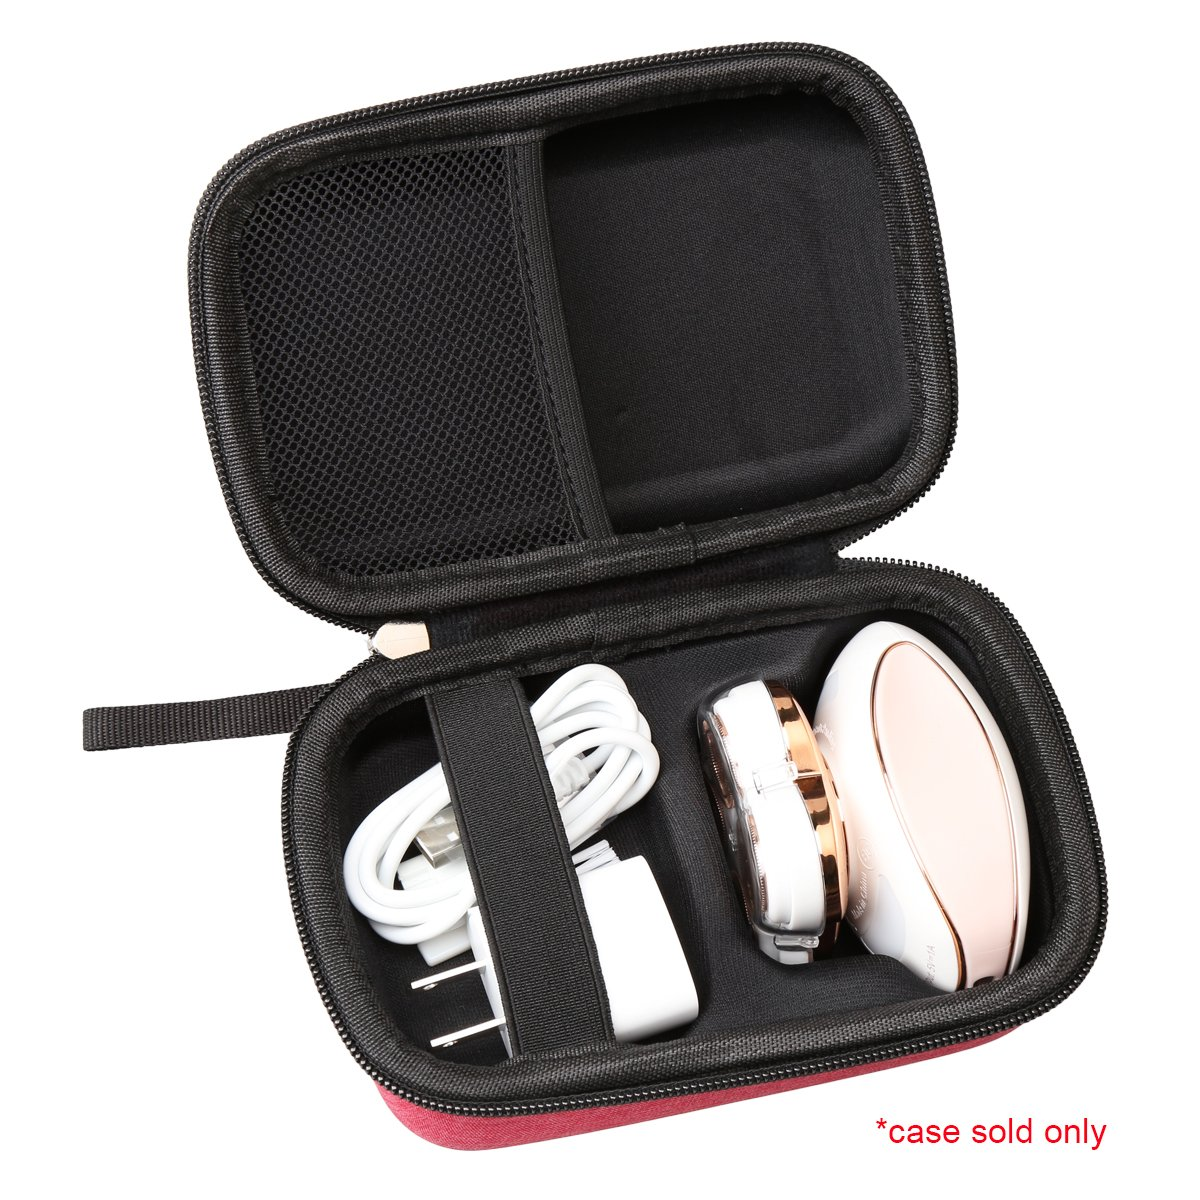 Red Hard Carrying Travel Case for Finishing Touch Flawless Legs Women's Hair Remover by Aproca